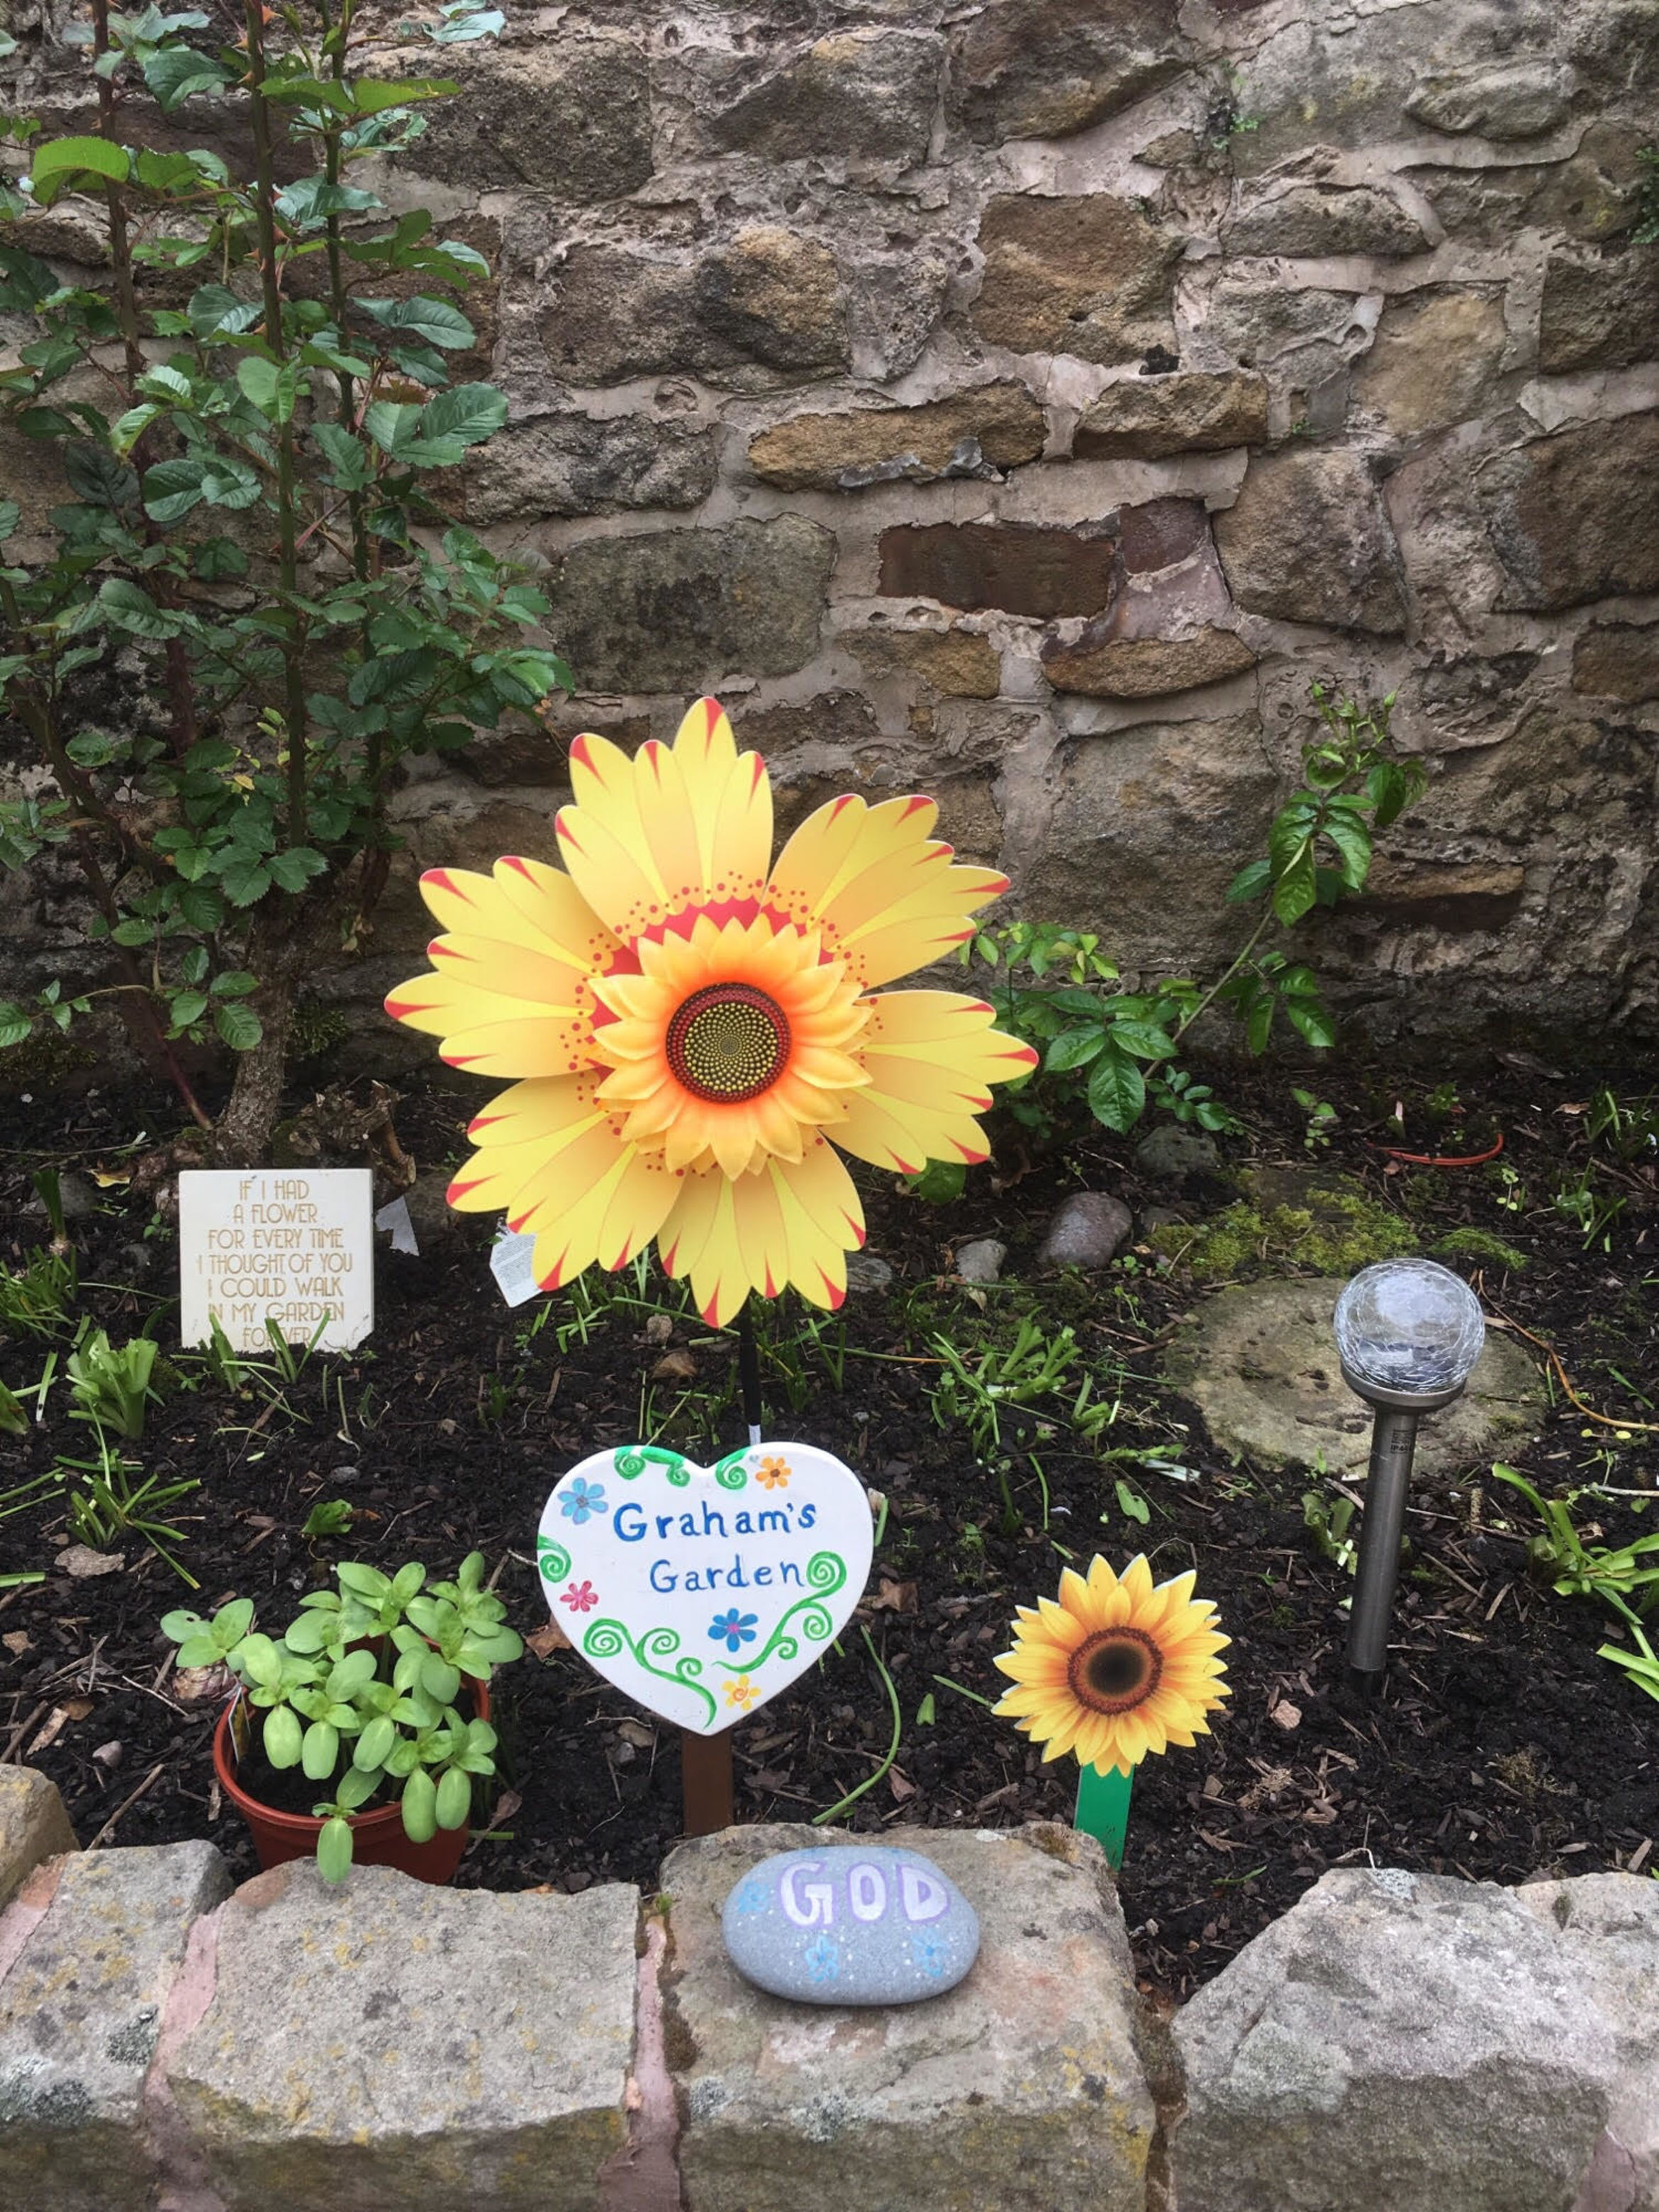 Mary Pomfret's garden in memory of her late husband